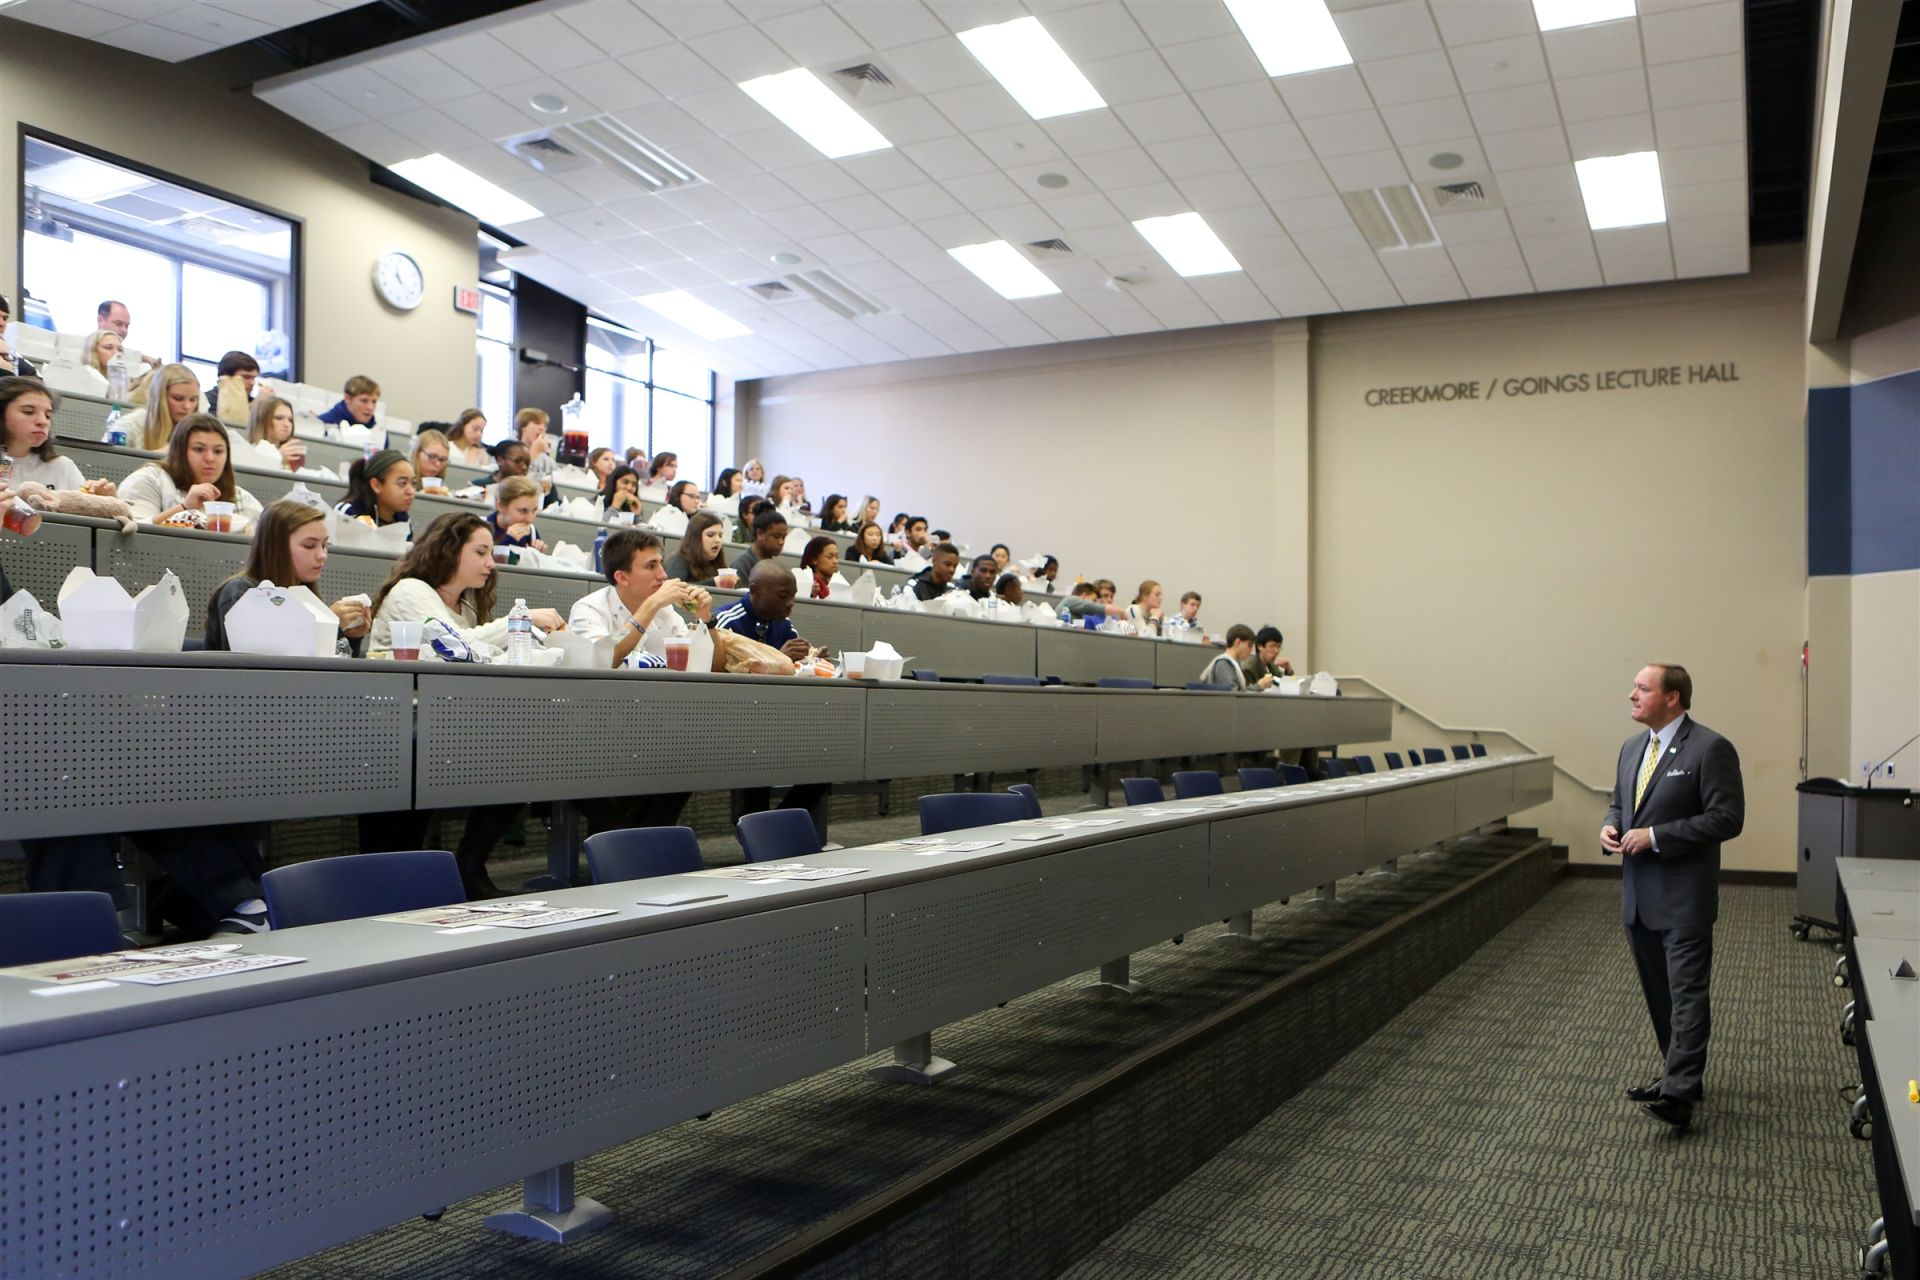 The Science Lecture Hall can accommodate an entire grade level.